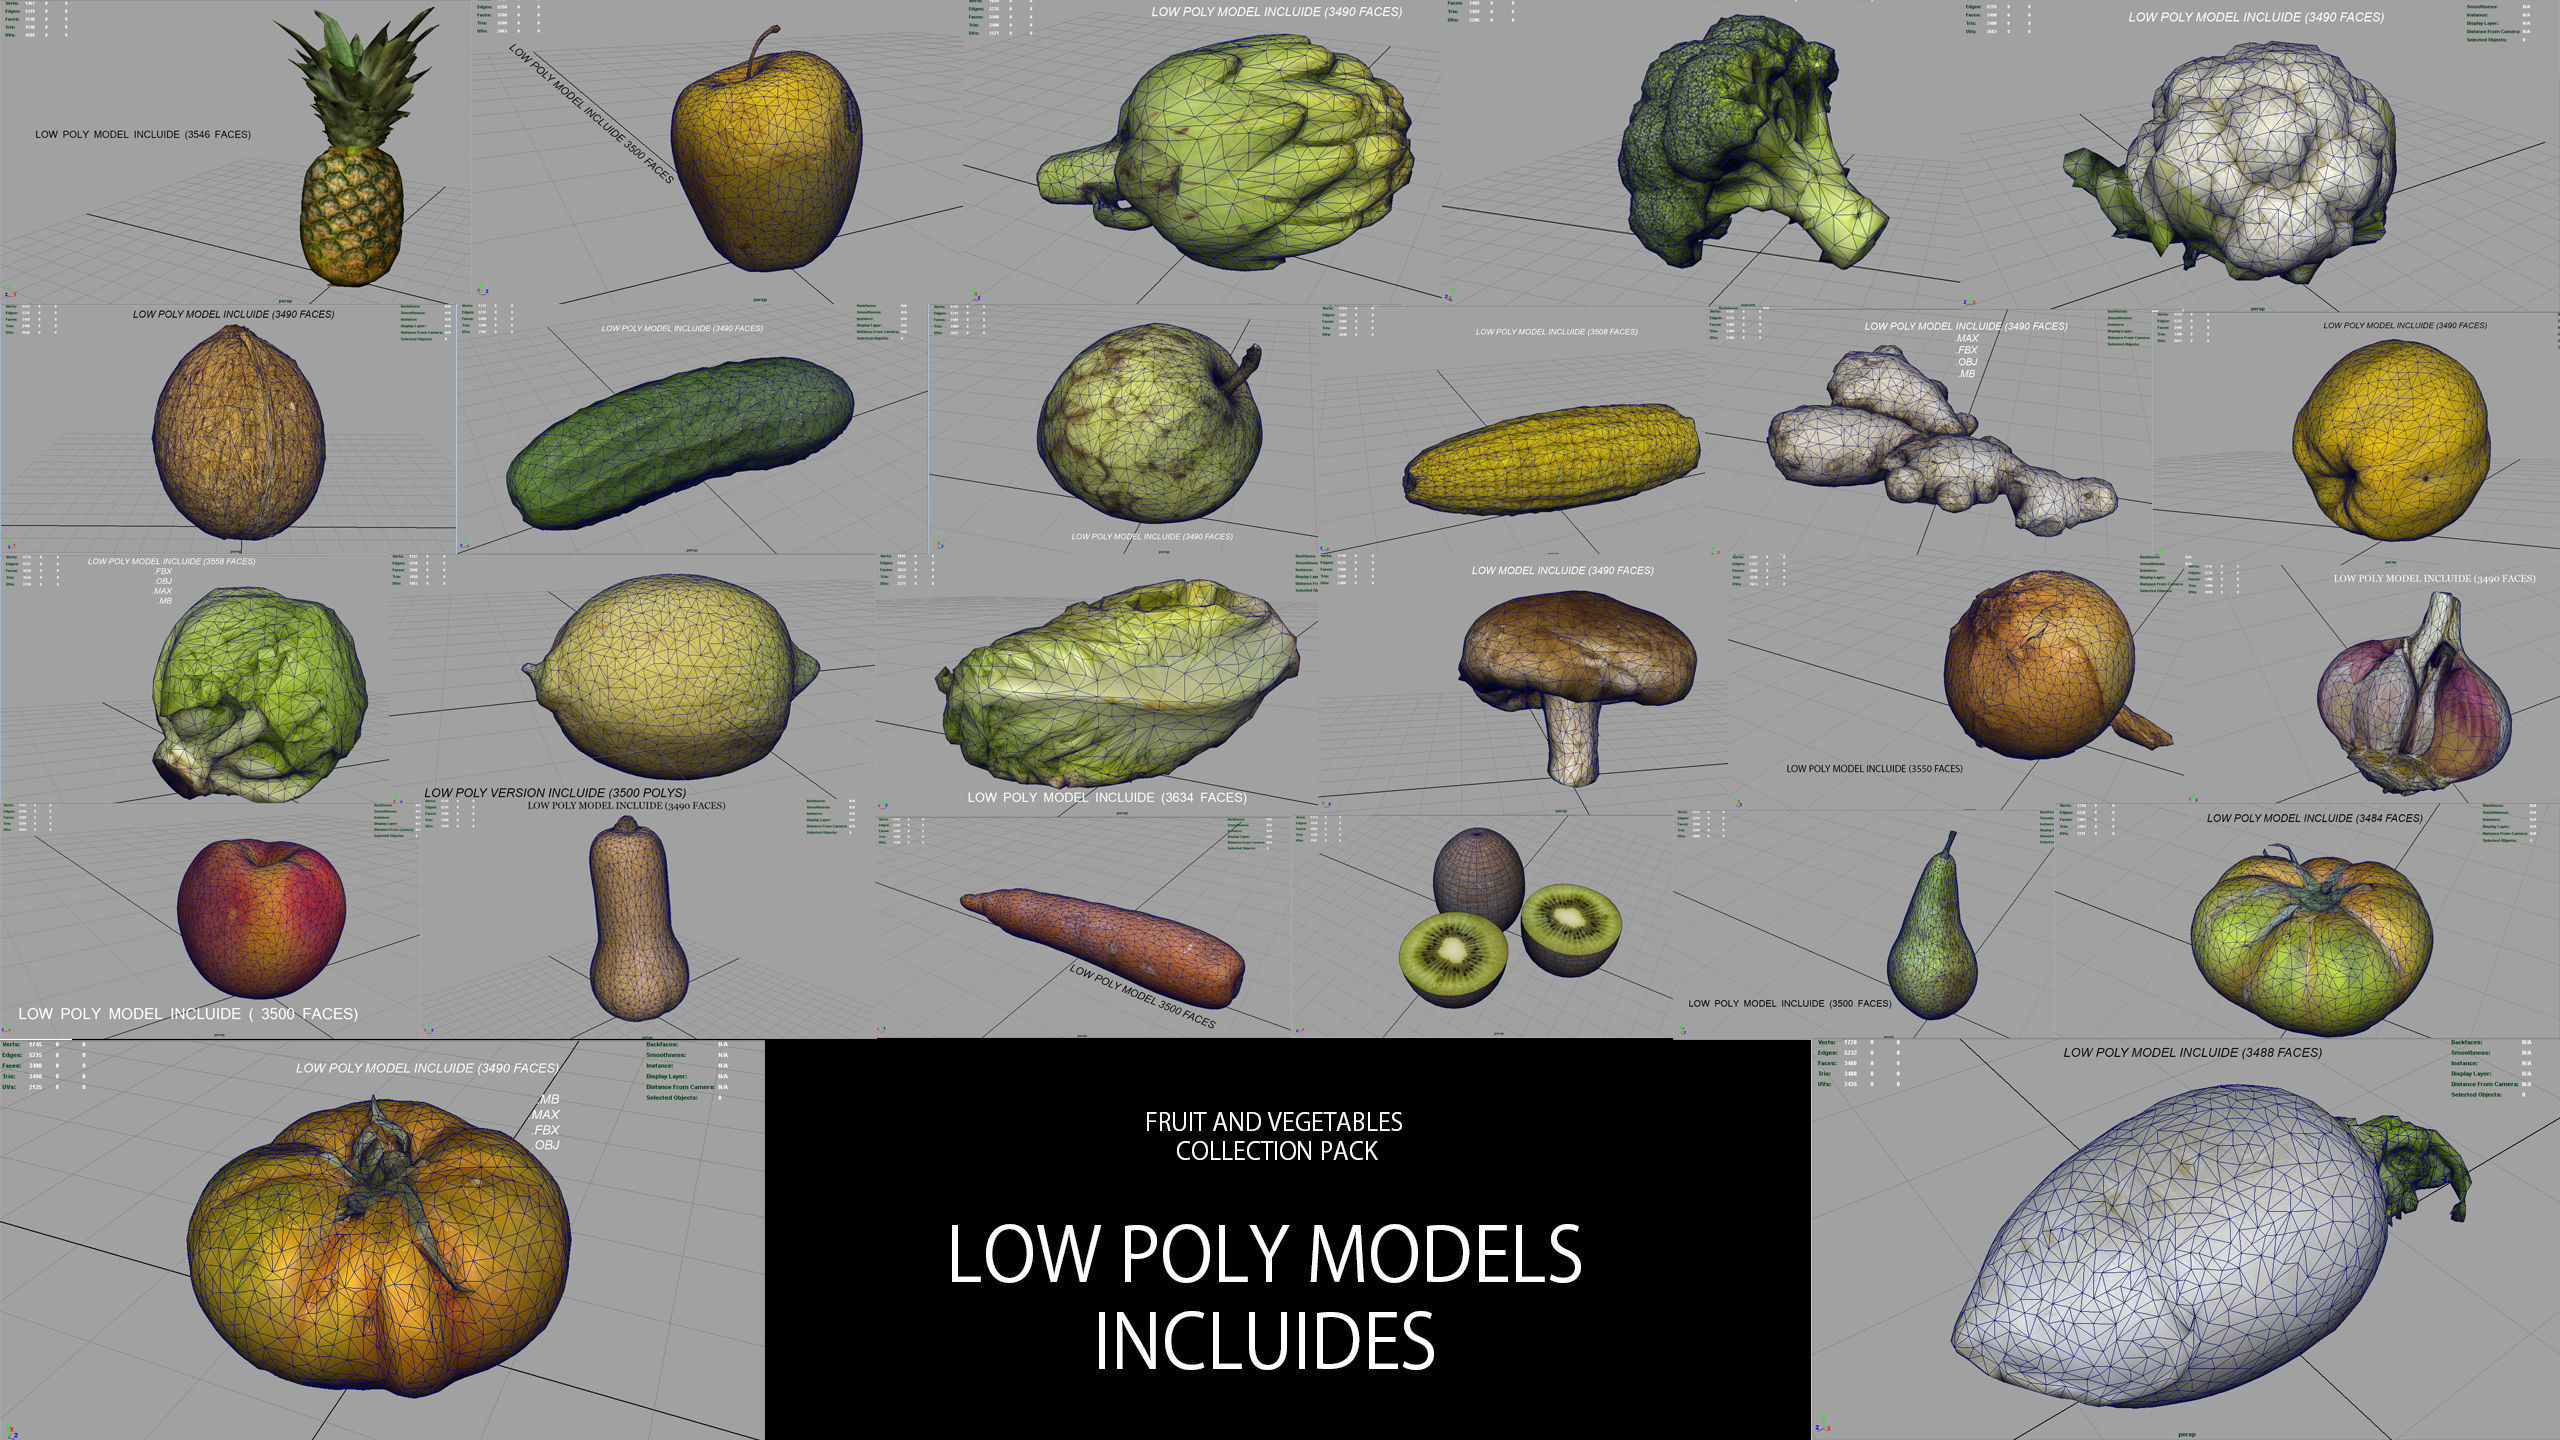 FRUIT AND VEGETABLES COLLECTION PACK